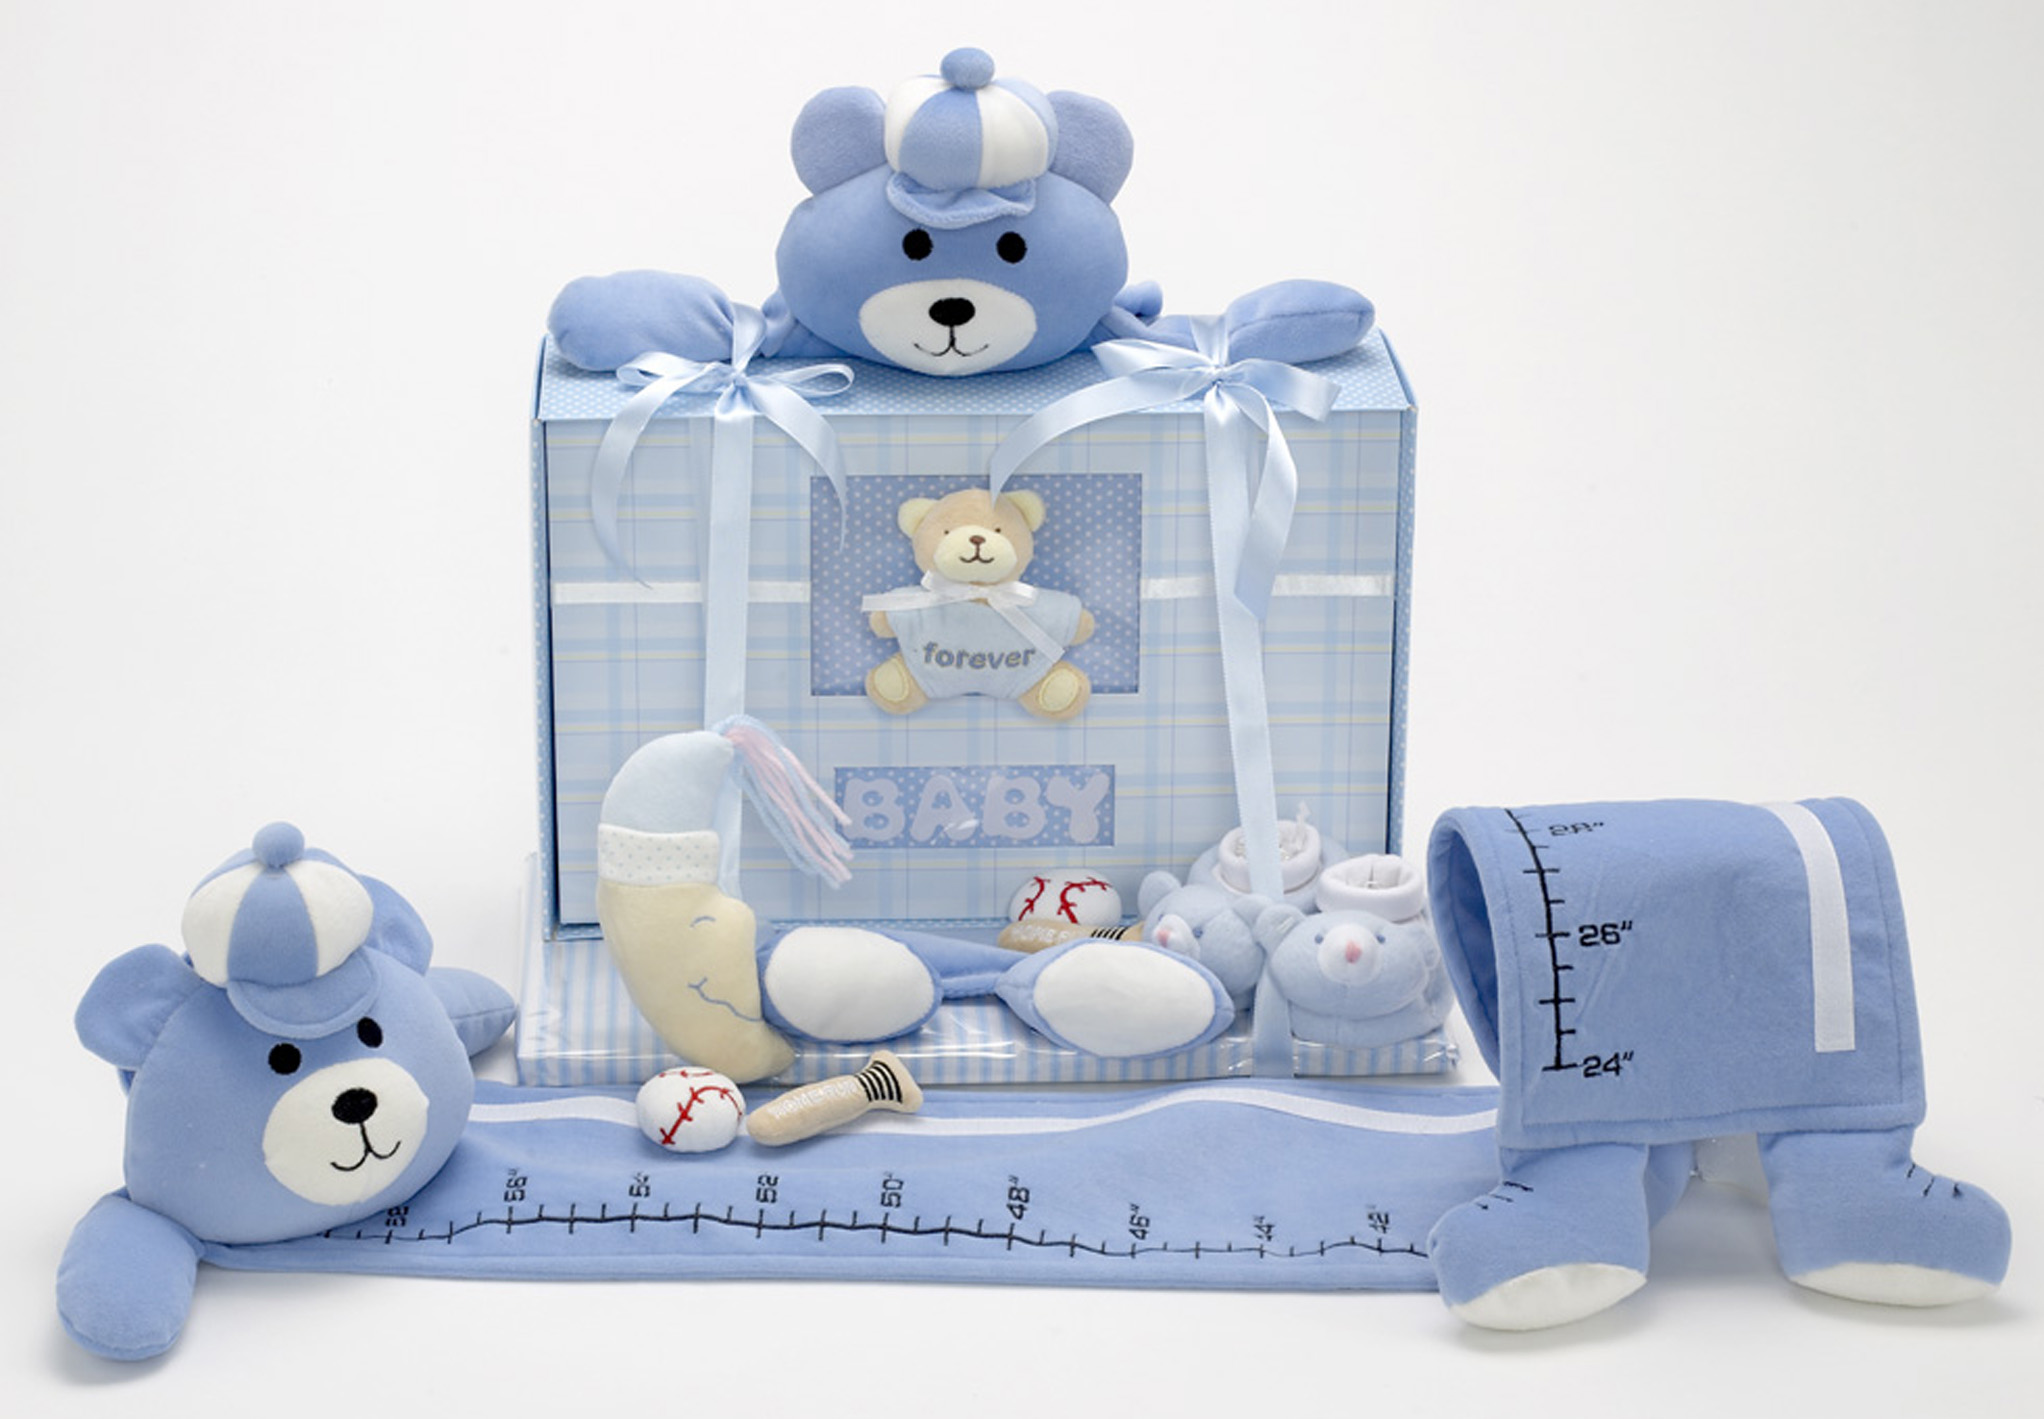 Keepsake baby boy gifts by silly phillie forever baby book growth chart gift set boy geenschuldenfo Choice Image